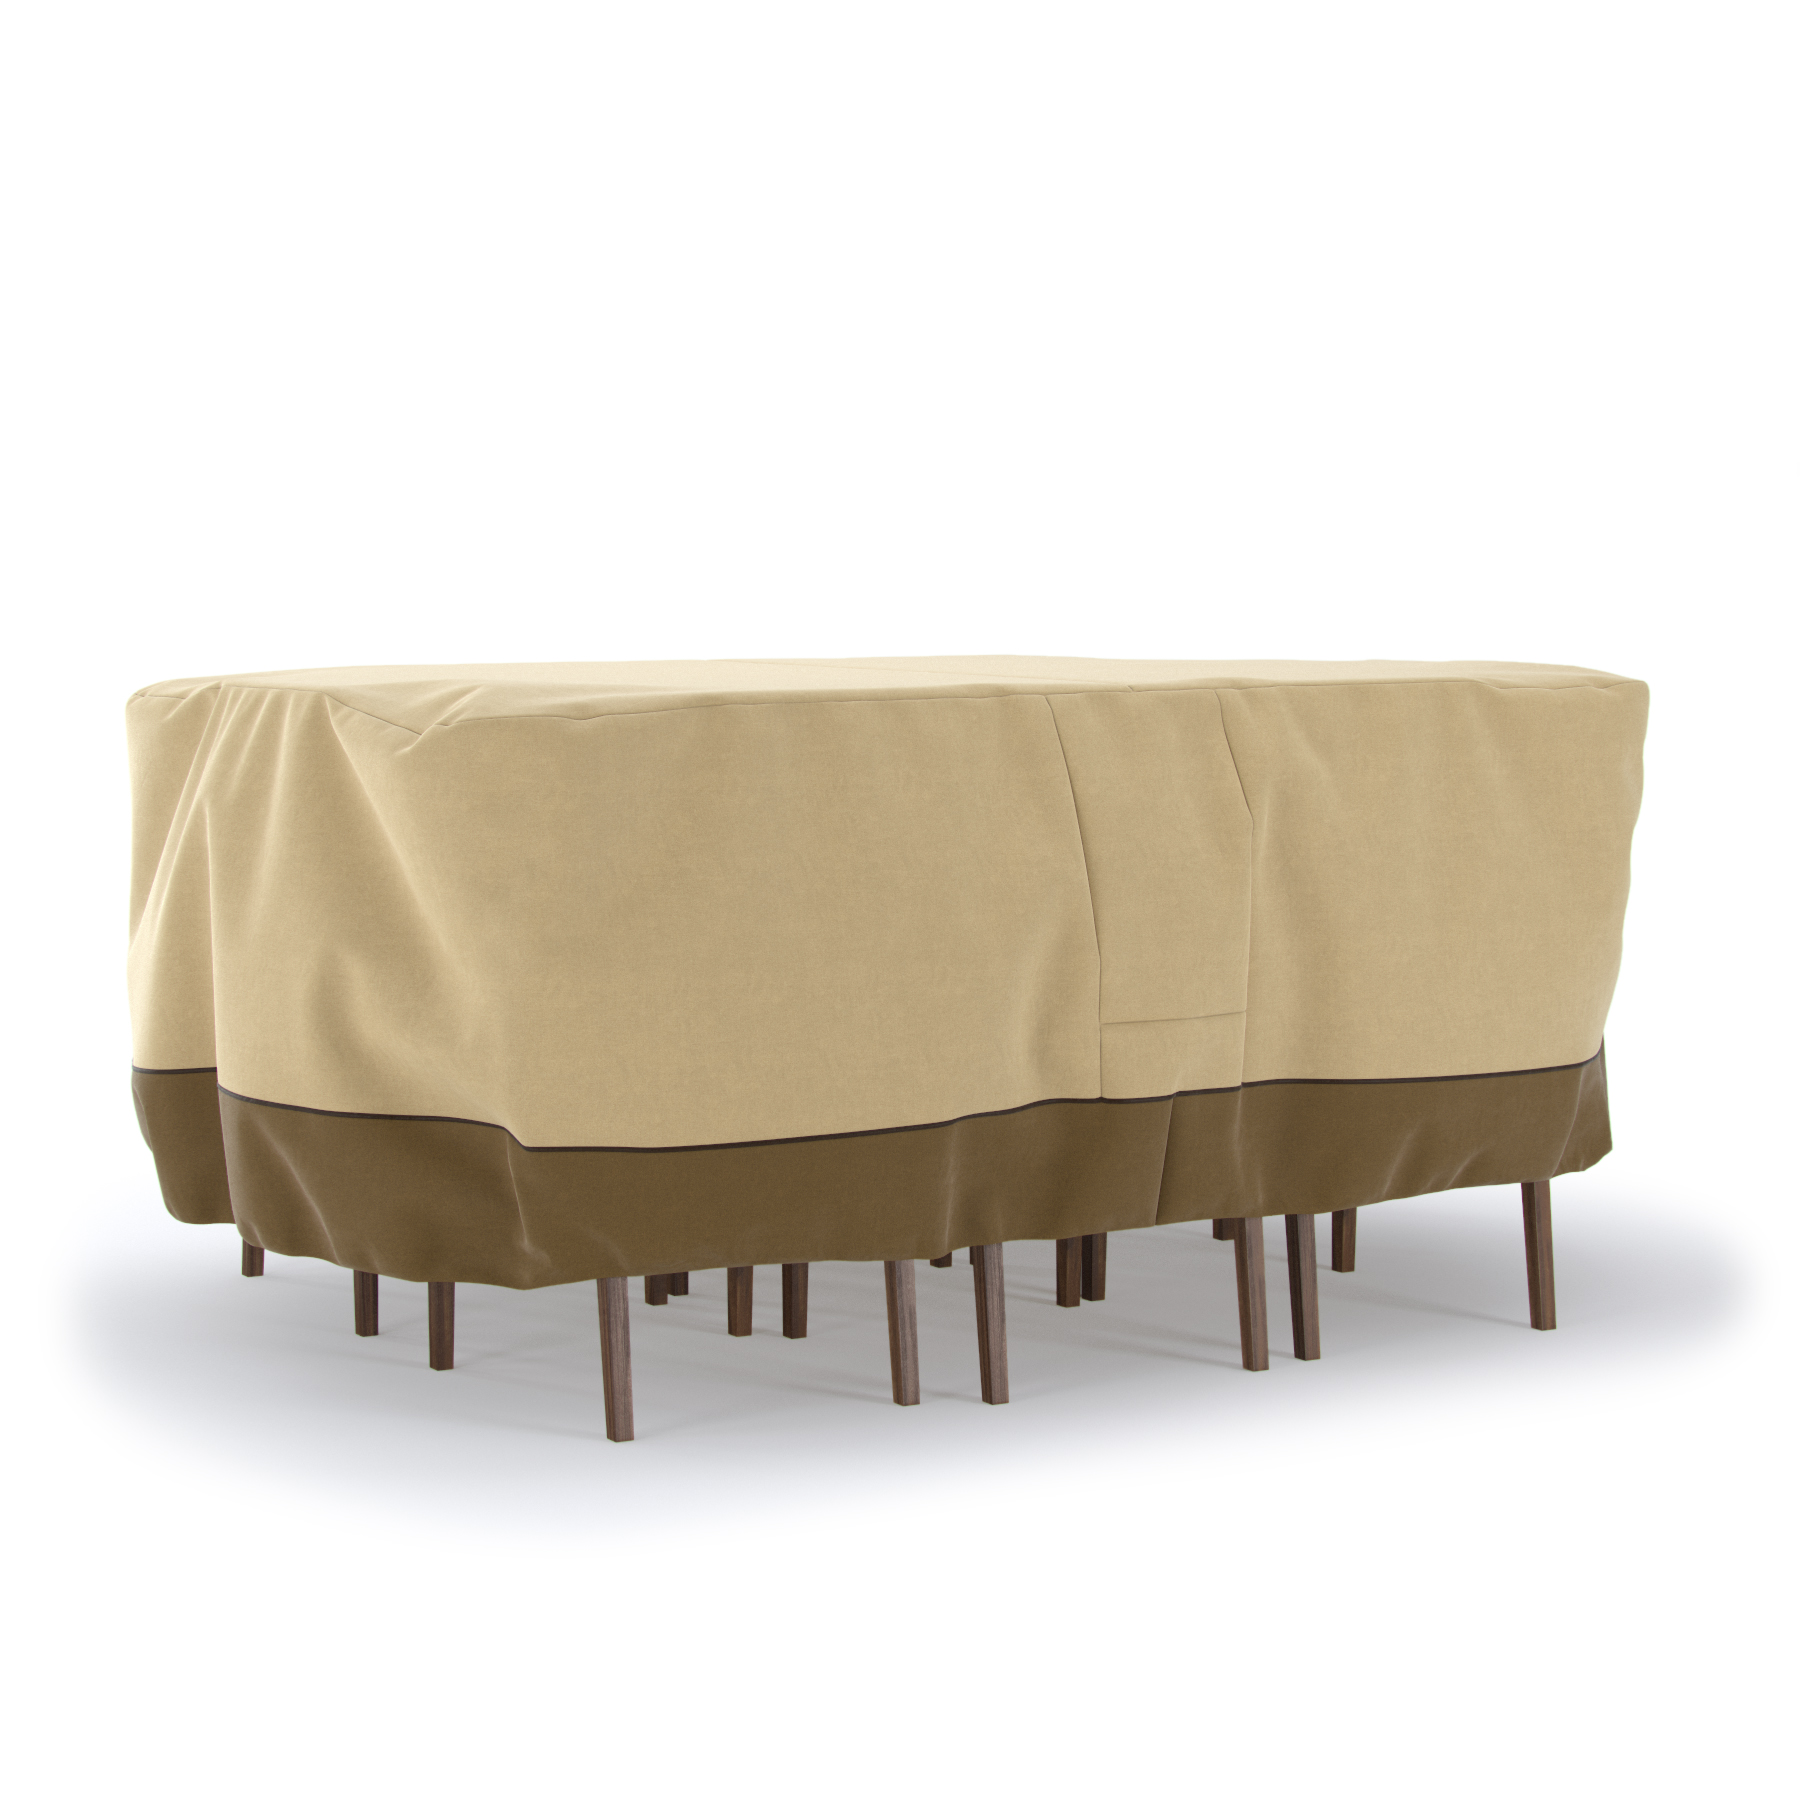 durable and water resistant outdoor furniture cover xl dura covers fade proof rectangular oval heavy duty patio table and chair set cover patio furniture accessories kolenik patio furniture covers